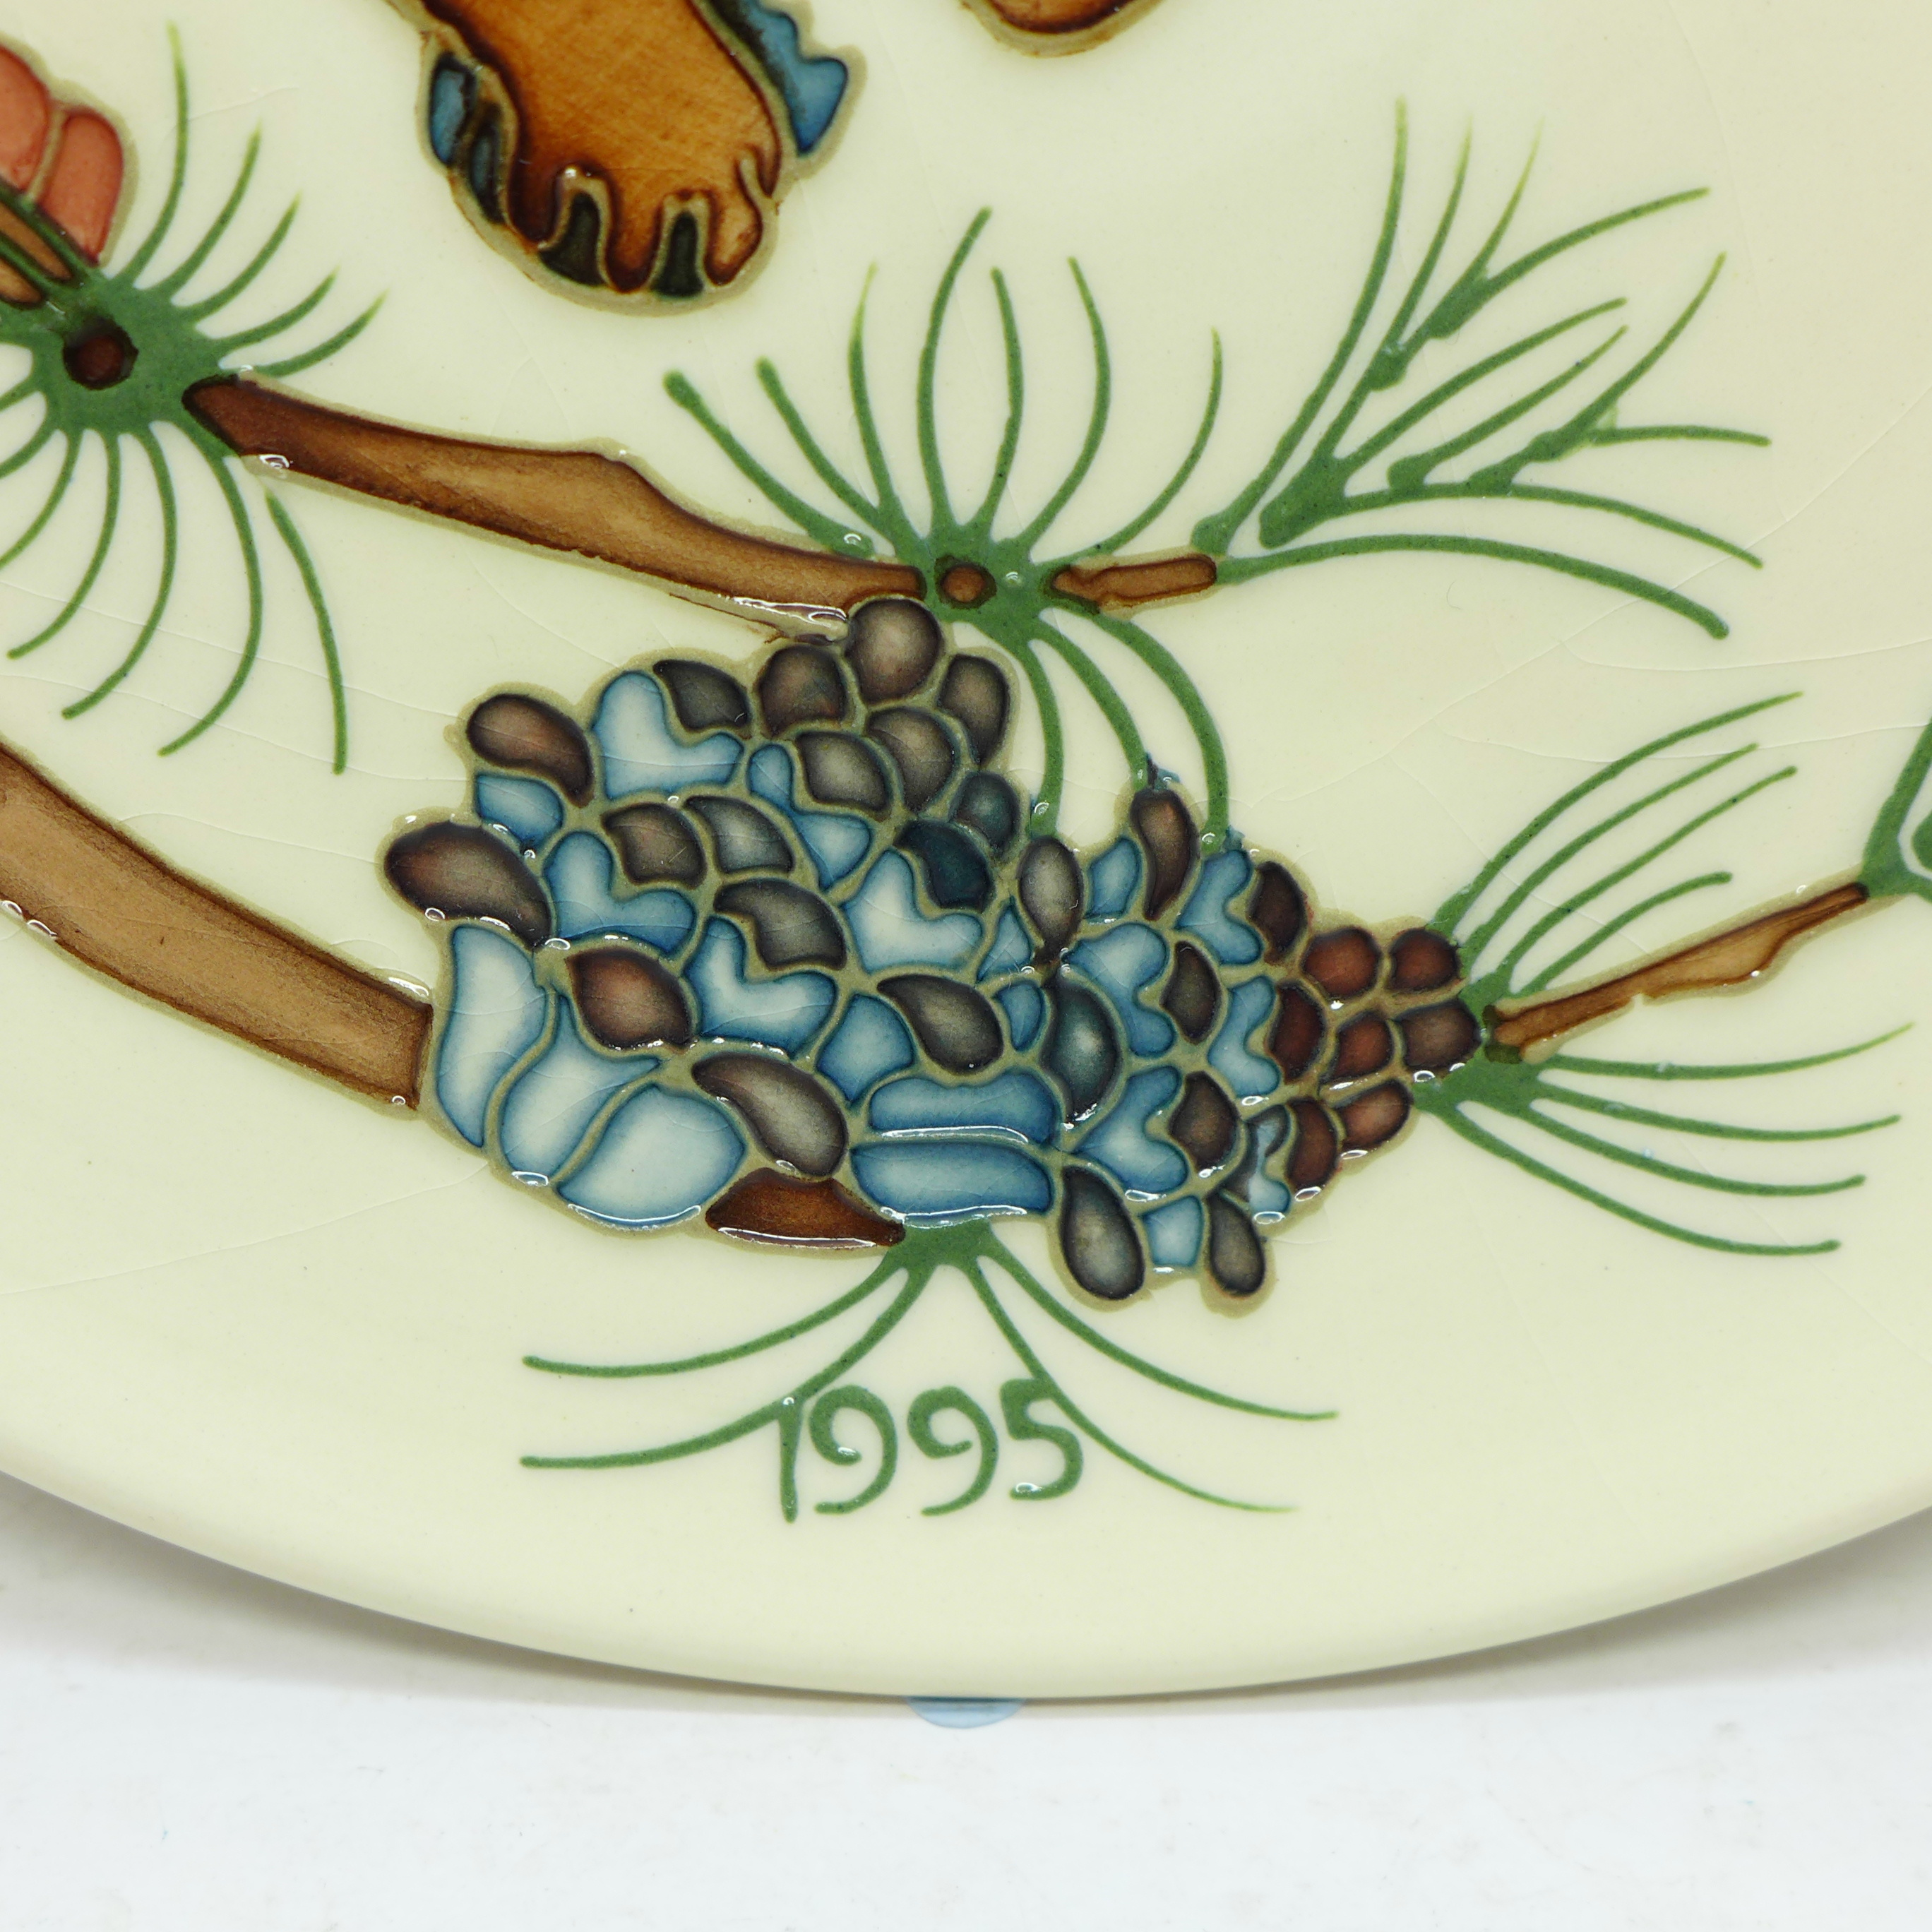 A Moorcroft Limited Edition Year Plate 1995, squirrel design, 300/500, signed and dated 4.11.95, - Image 3 of 6